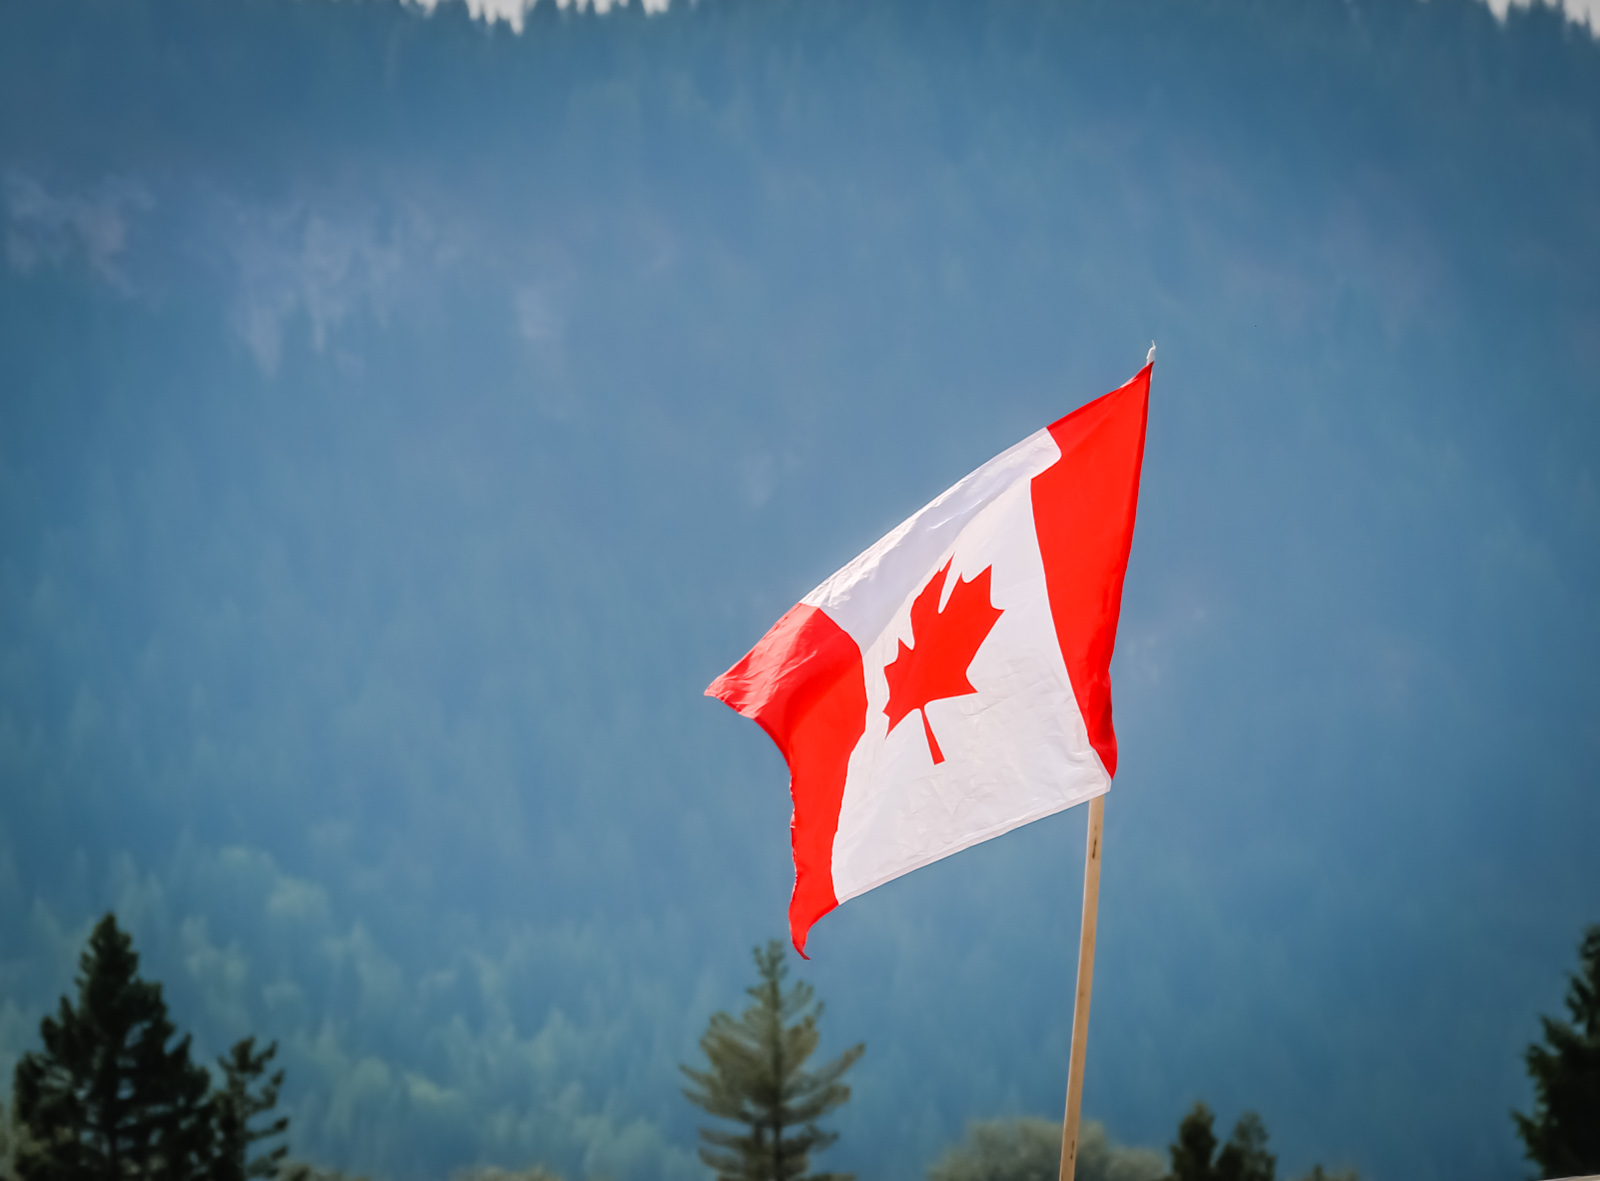 Ask The Festival Lawyer: Can I Travel to Canada with a DUI Prior? | Everfest